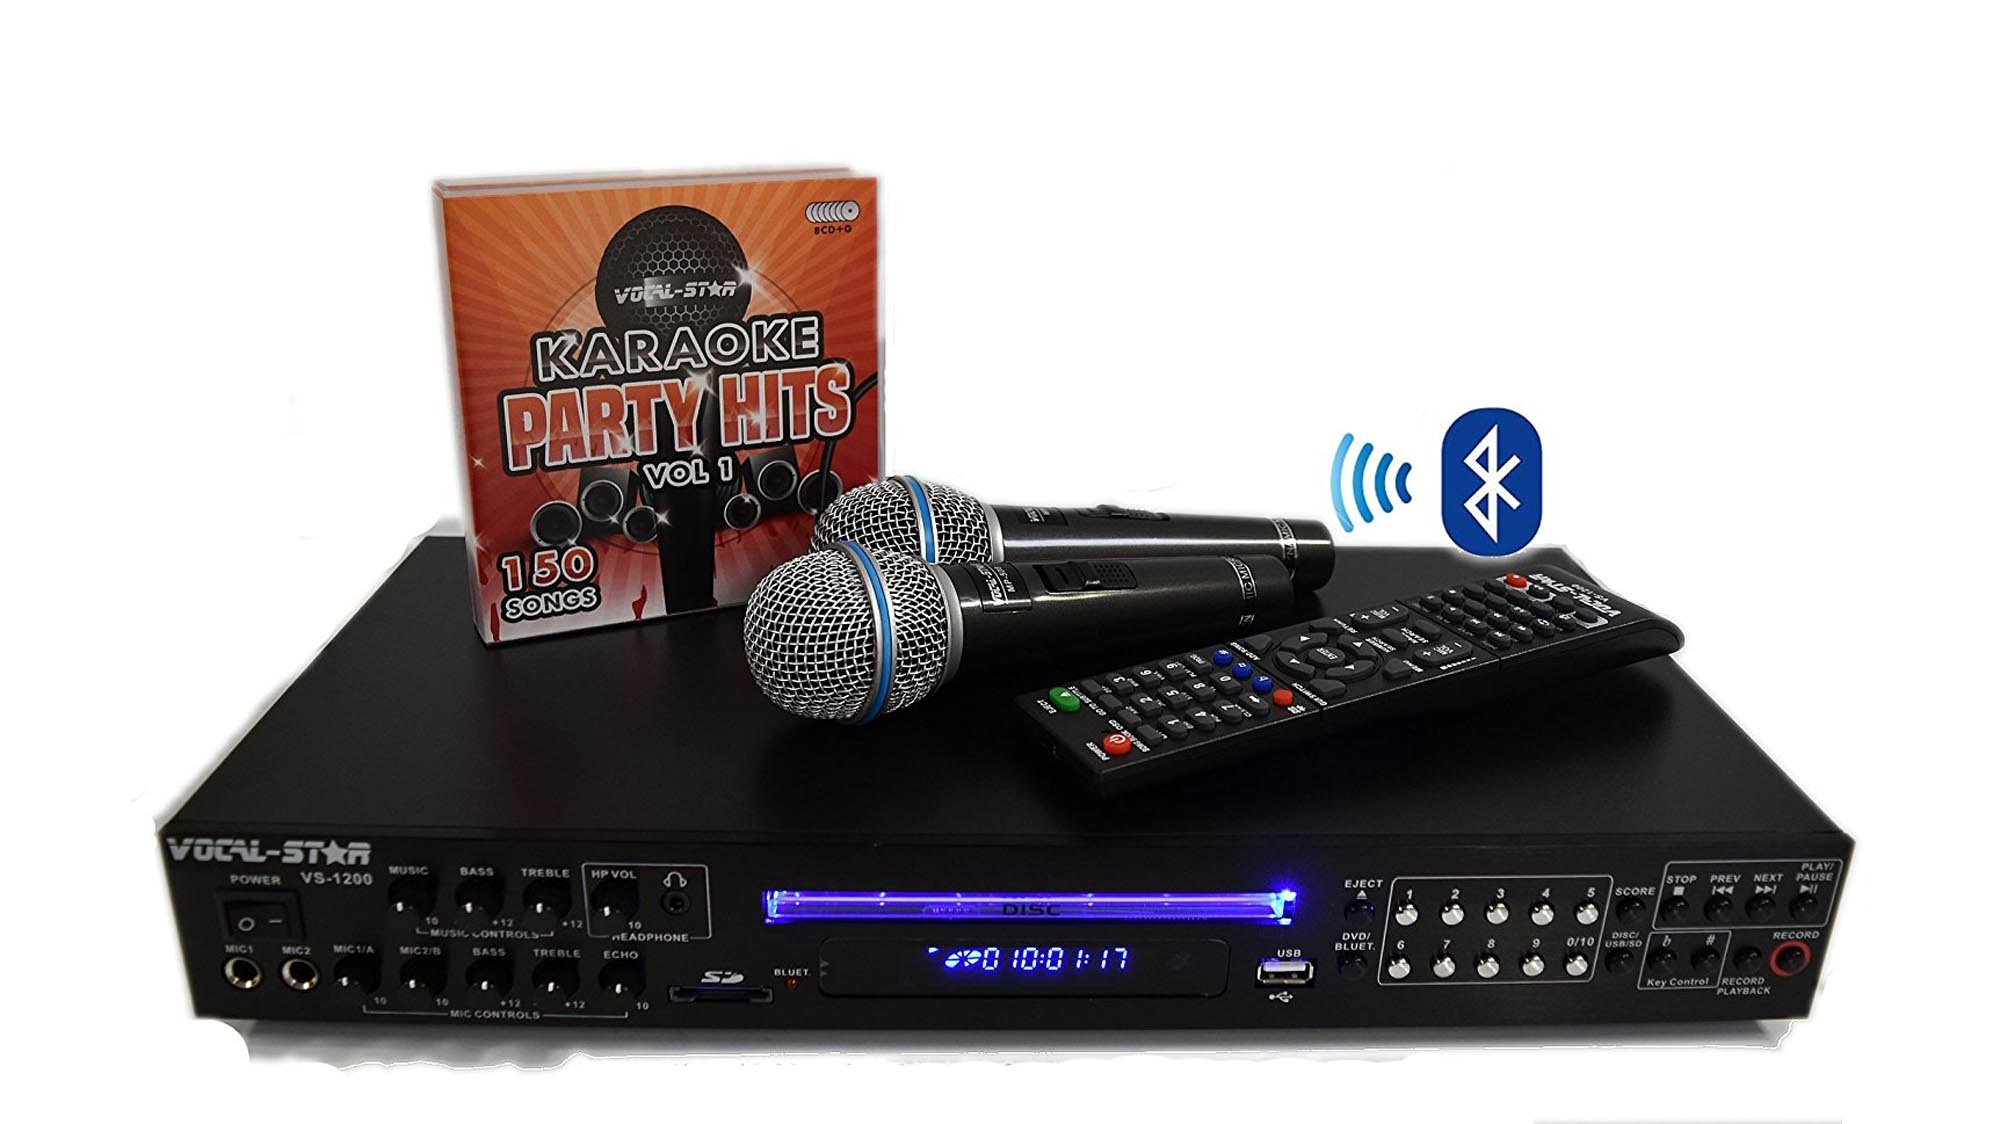 Best Karaoke Machine 2018 Save On Singing Machines With Black Mic Wireless Microphone Hifi Speaker Sing A Song Professional Kit Used In Bars Can Cost Silly Money But If You Want Something Affordable And Bit More Polished Than The Usual Home Oriented